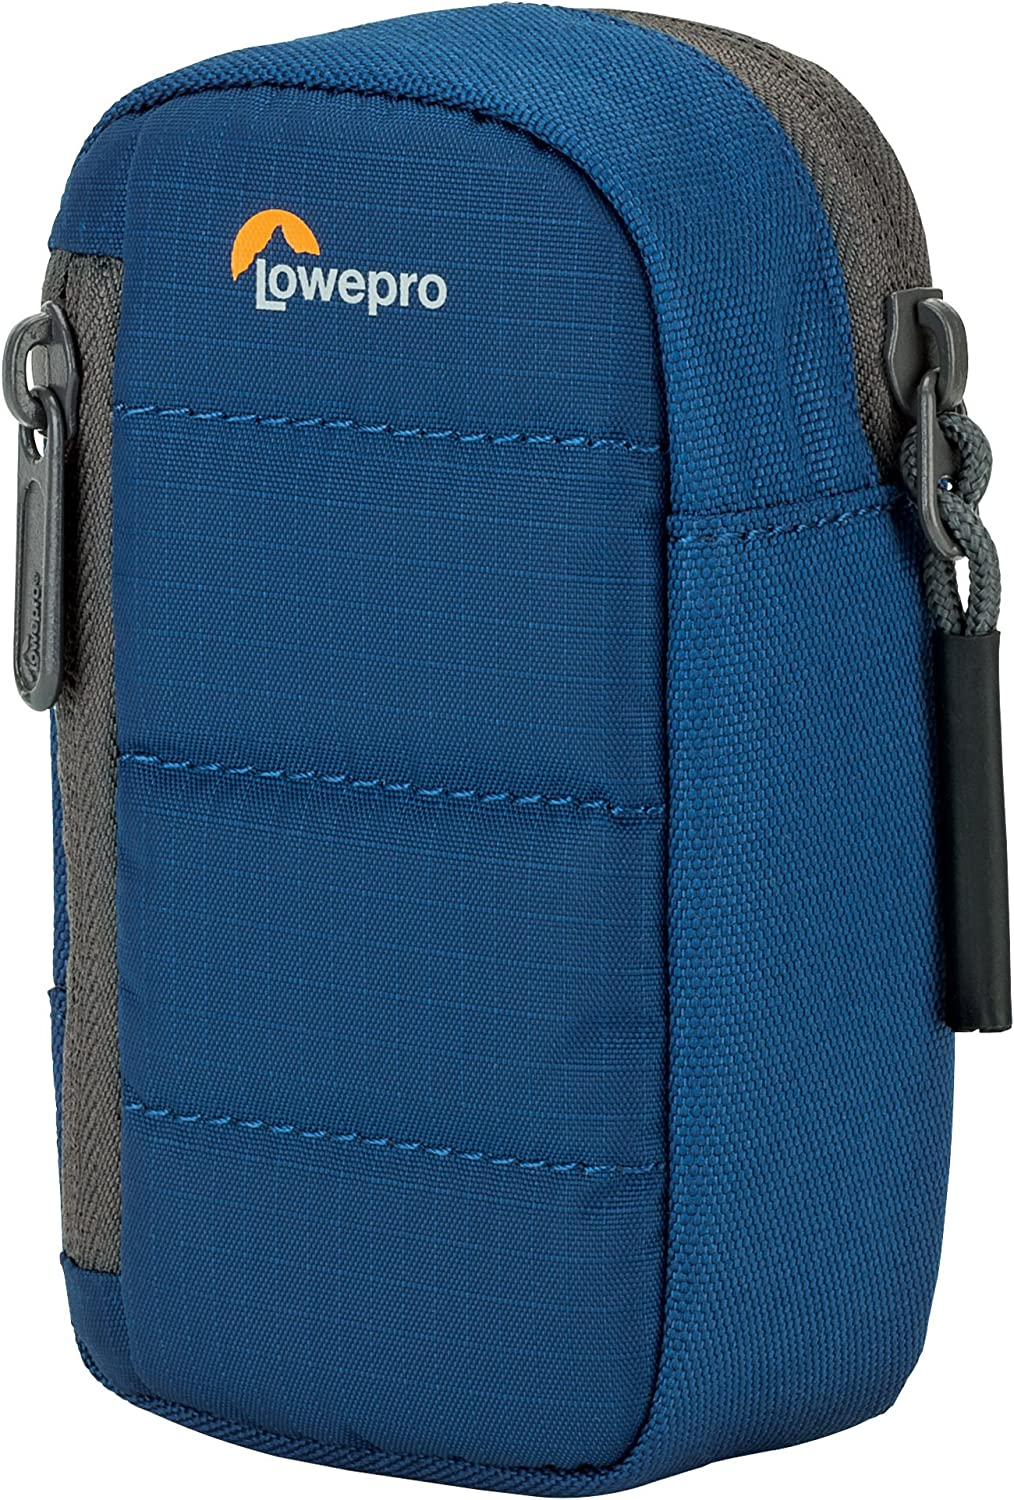 Lowepro Tahoe CS 20 - A Lightweight and Protective Camera Case for Compact Cameras